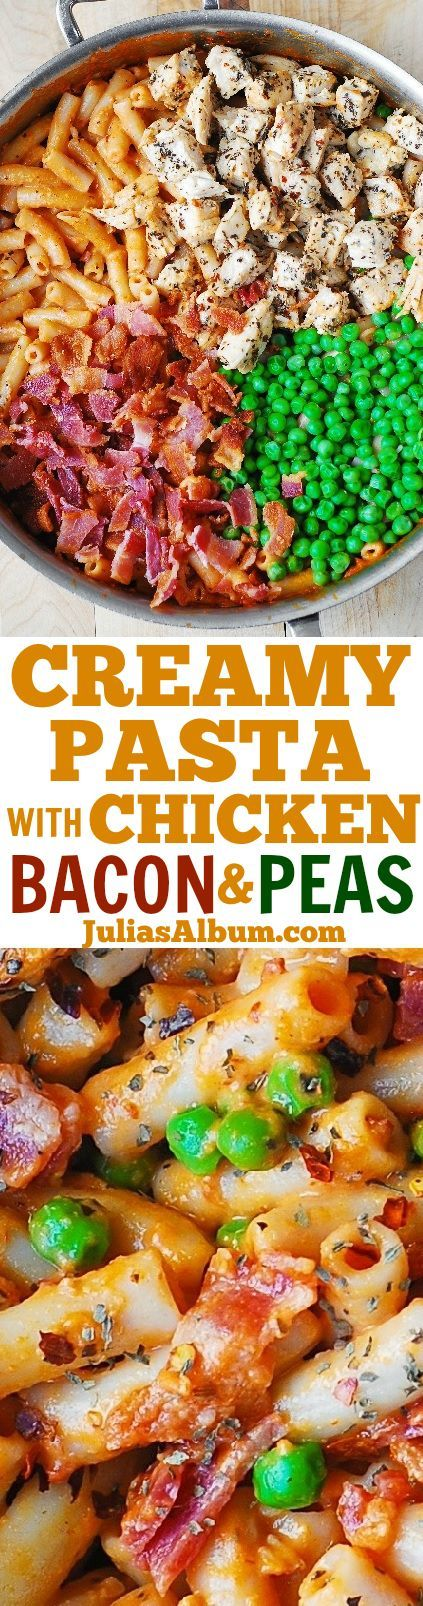 8 slices Bacon. 1 lb Chicken breast. 1 1/2 tsp Basil, dry. 6 Garlic cloves. 1 cup Green peas, frozen. 1 (15 oz can Tomato sauce. 8 oz Penne pasta. 1 tsp Red pepper flake. 1 Salt. 2 tbsp Olive oil. 1/2 cup Heavy cream. 1 cup Mozzarella cheese, grated.